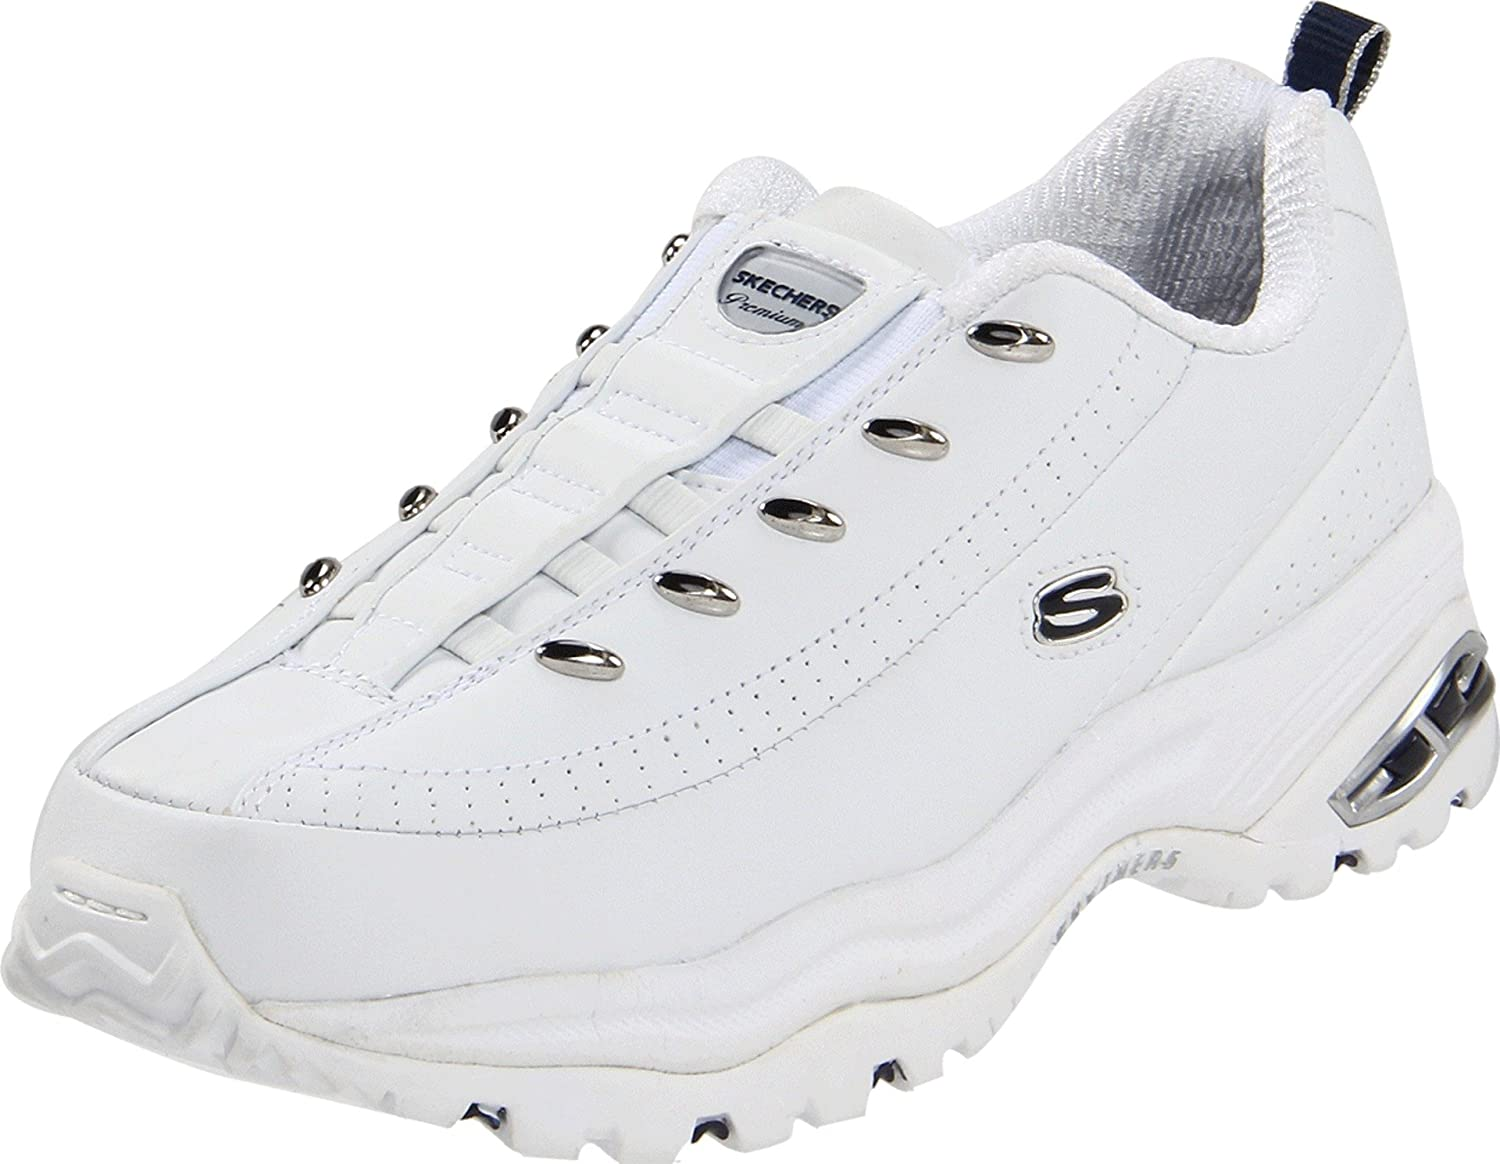 Skechers Sport Women's Premium-Premix Slip-On Sneaker B000PGR304 10 W US|White/Navy